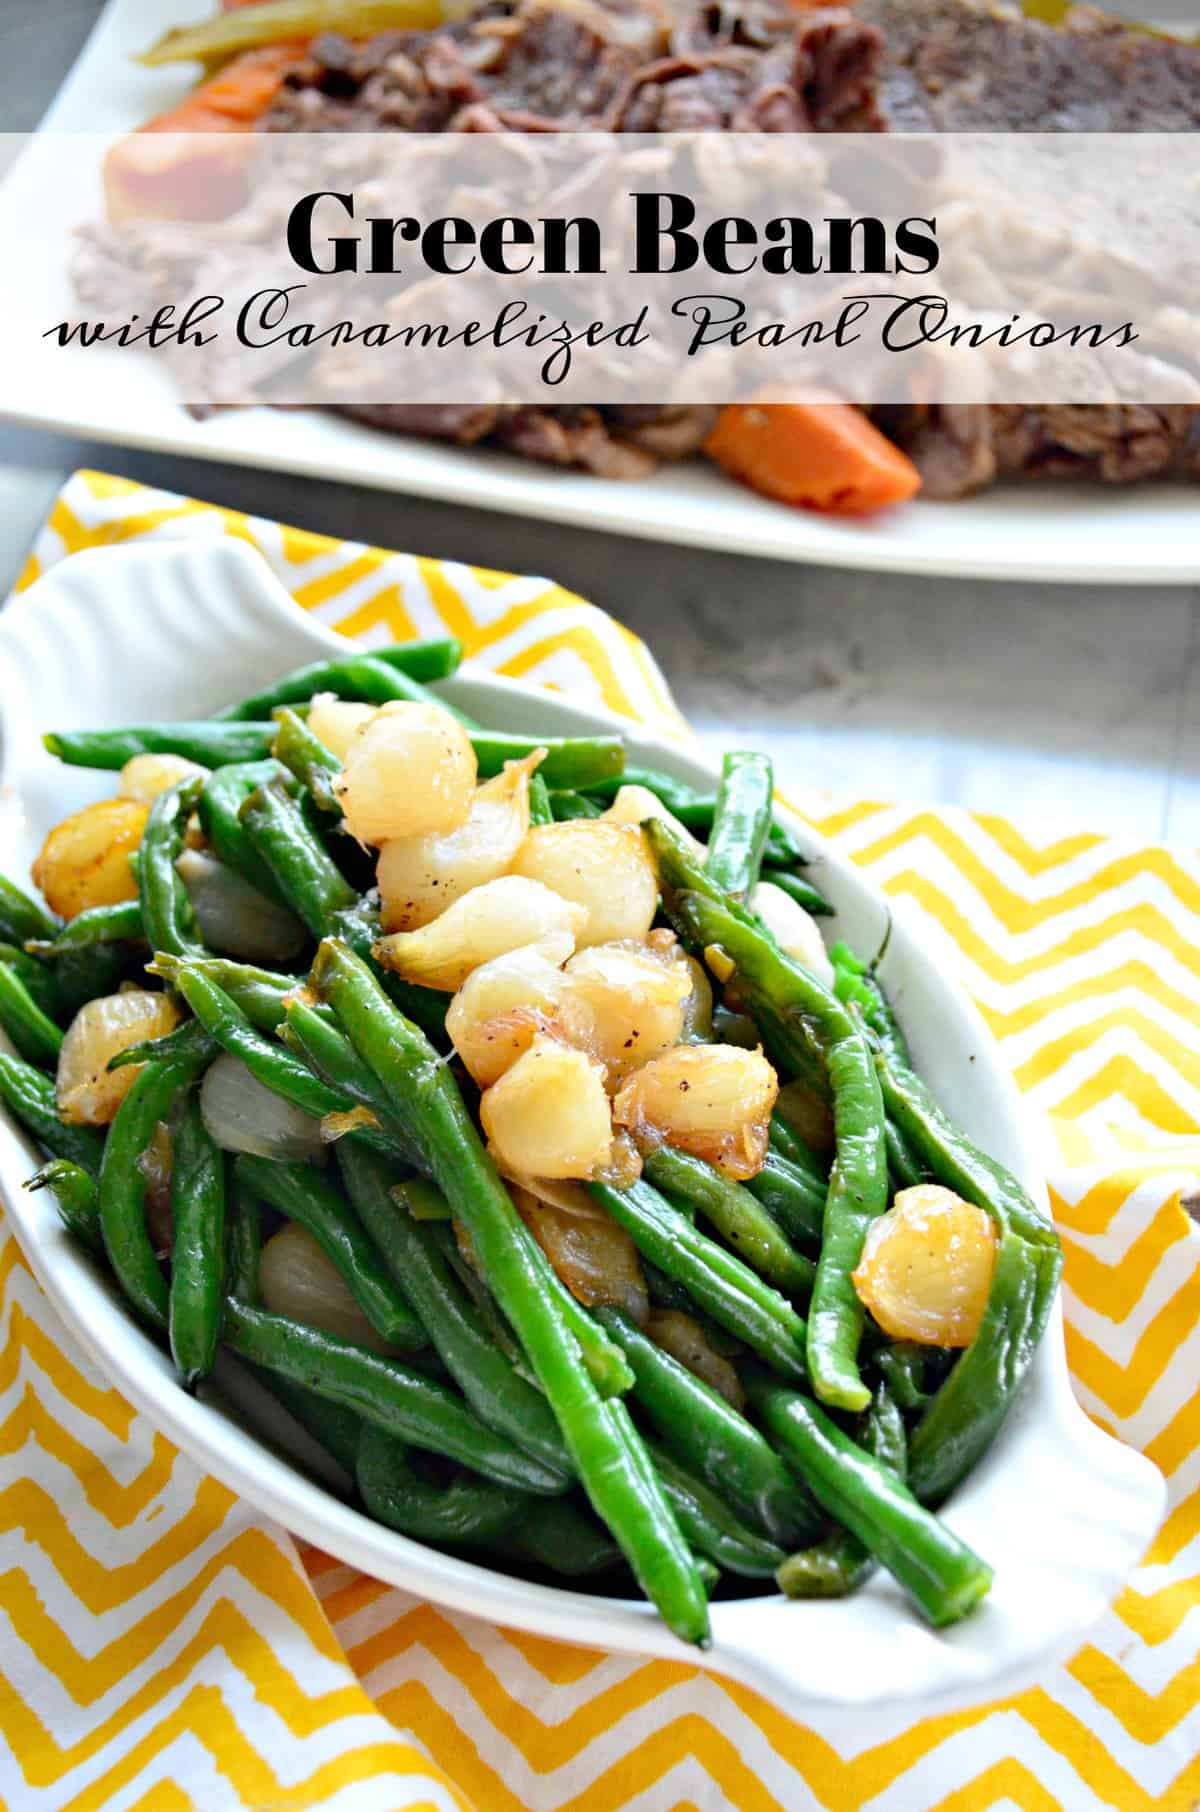 Green Beans with Caramelized Pearl Onions in white oval with title text.